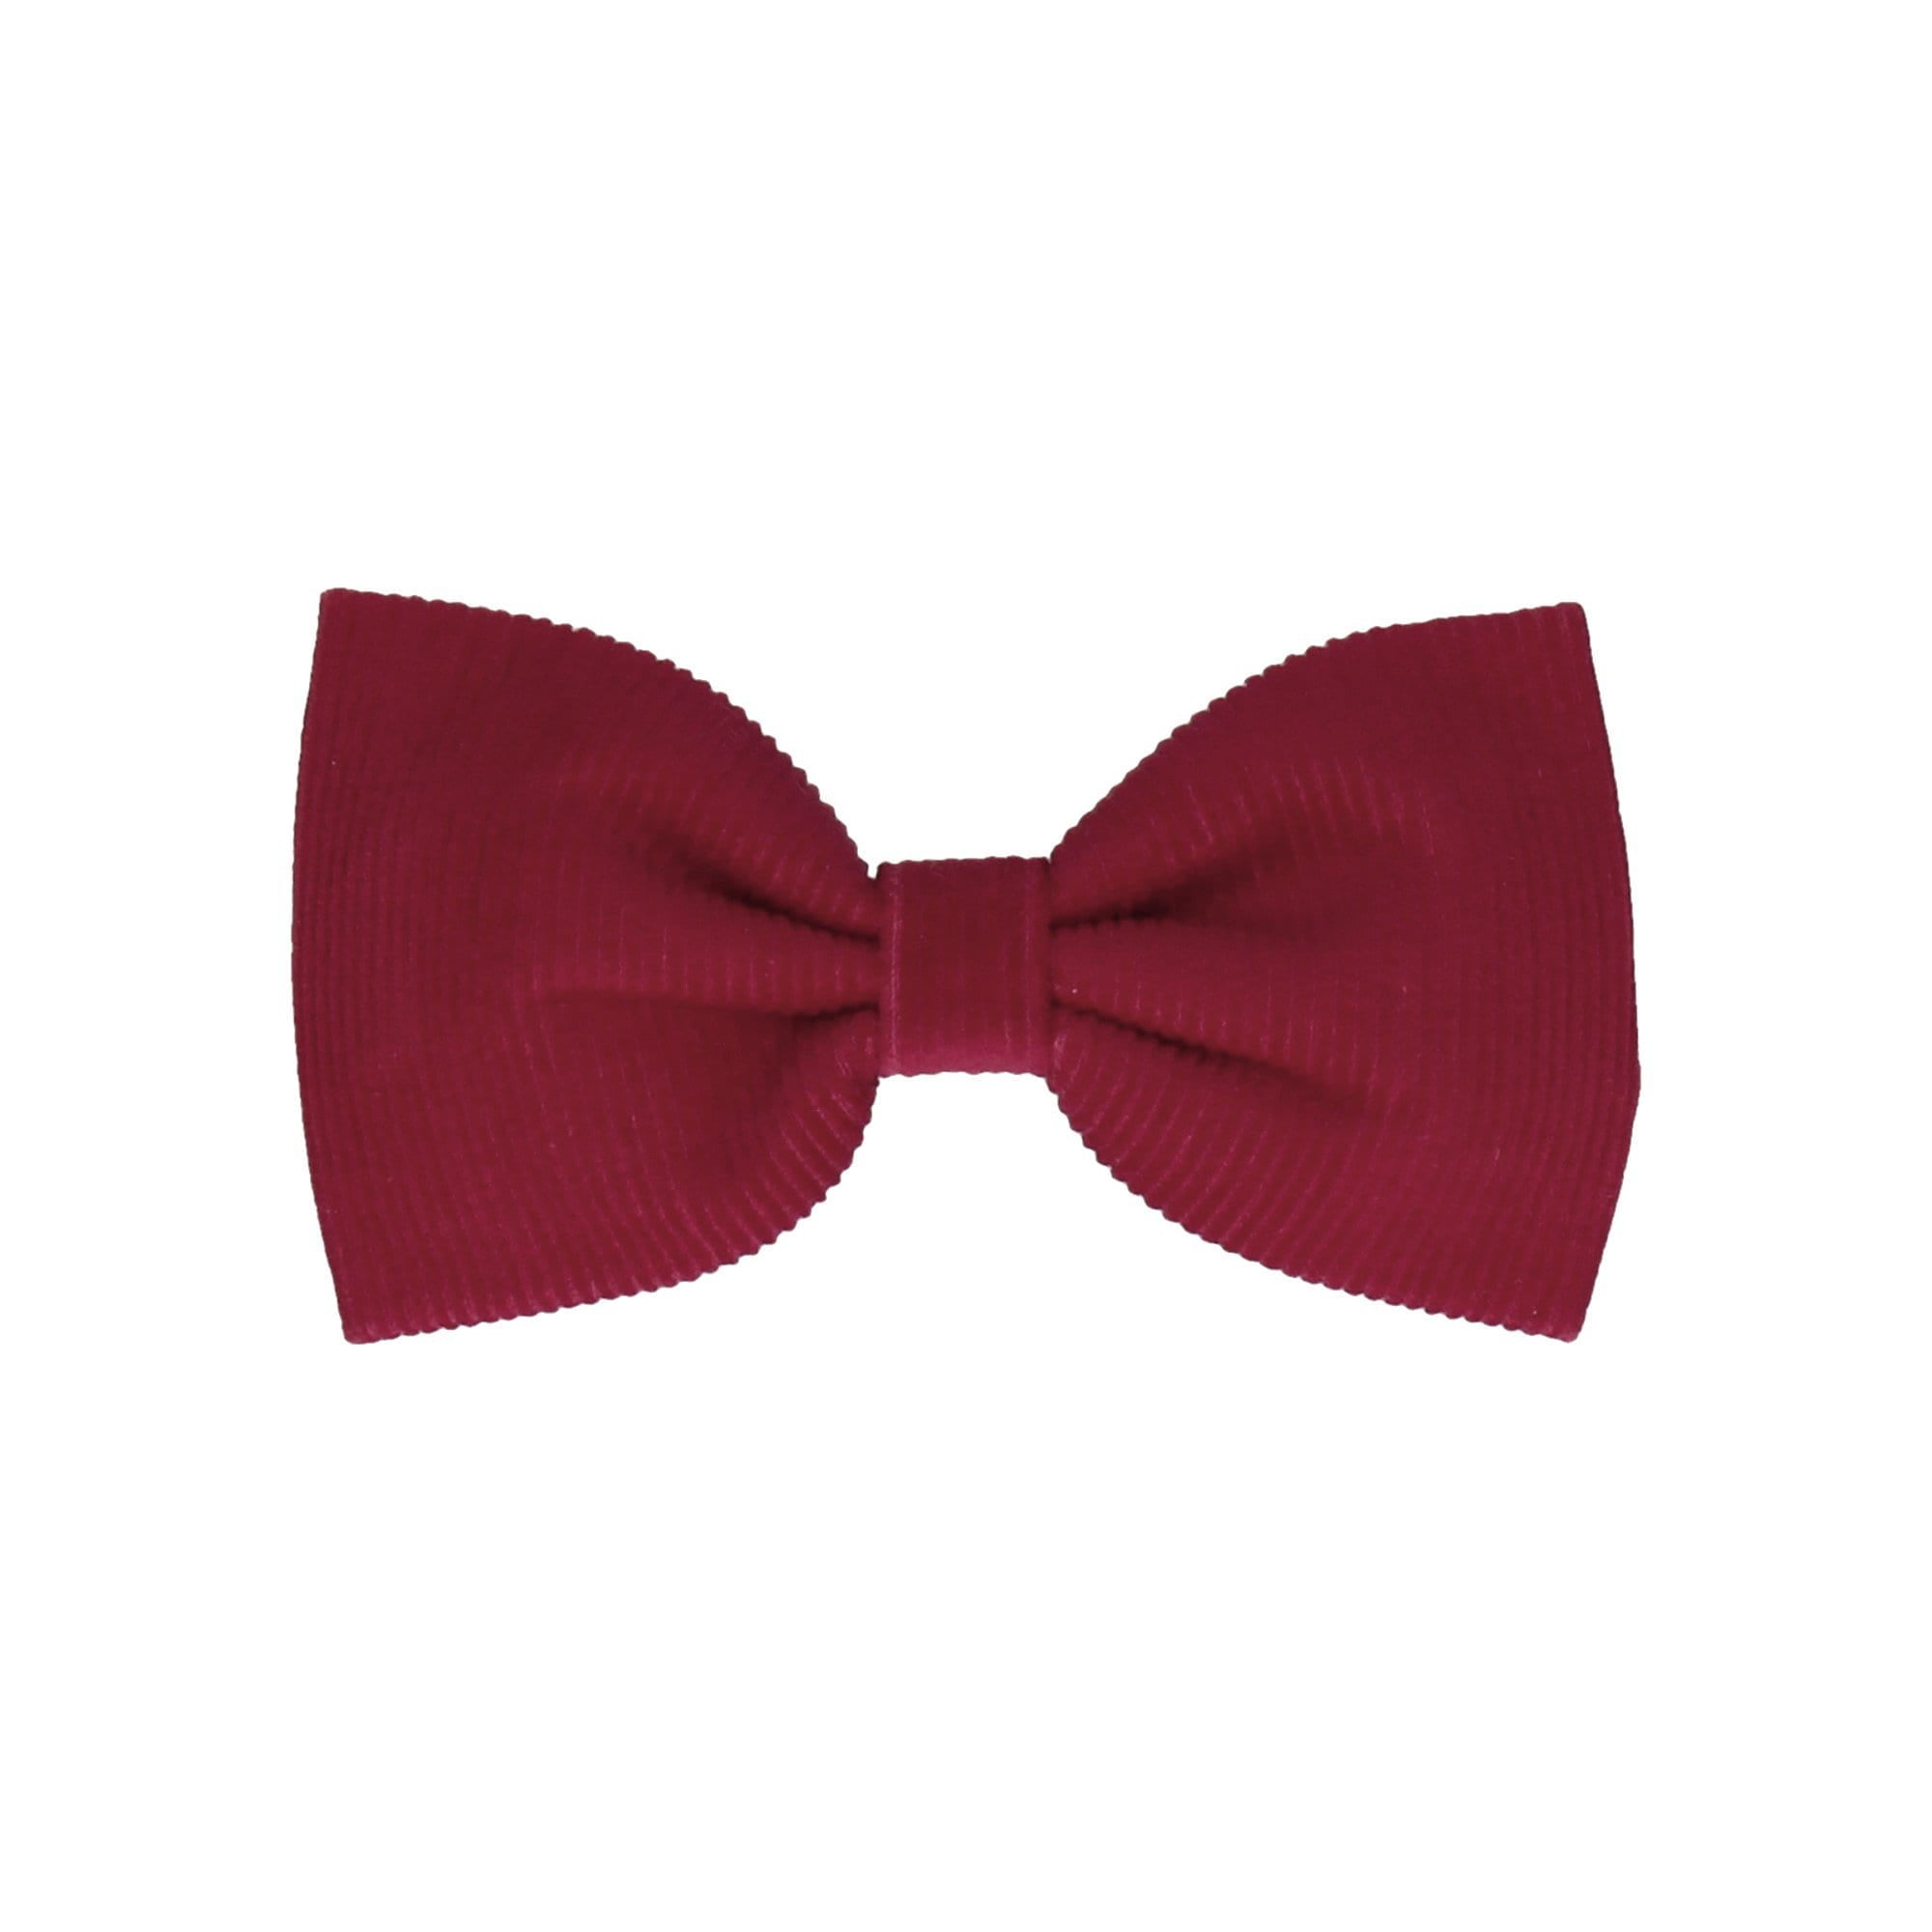 Corduroy in Cherry (Child's Bow Tie)